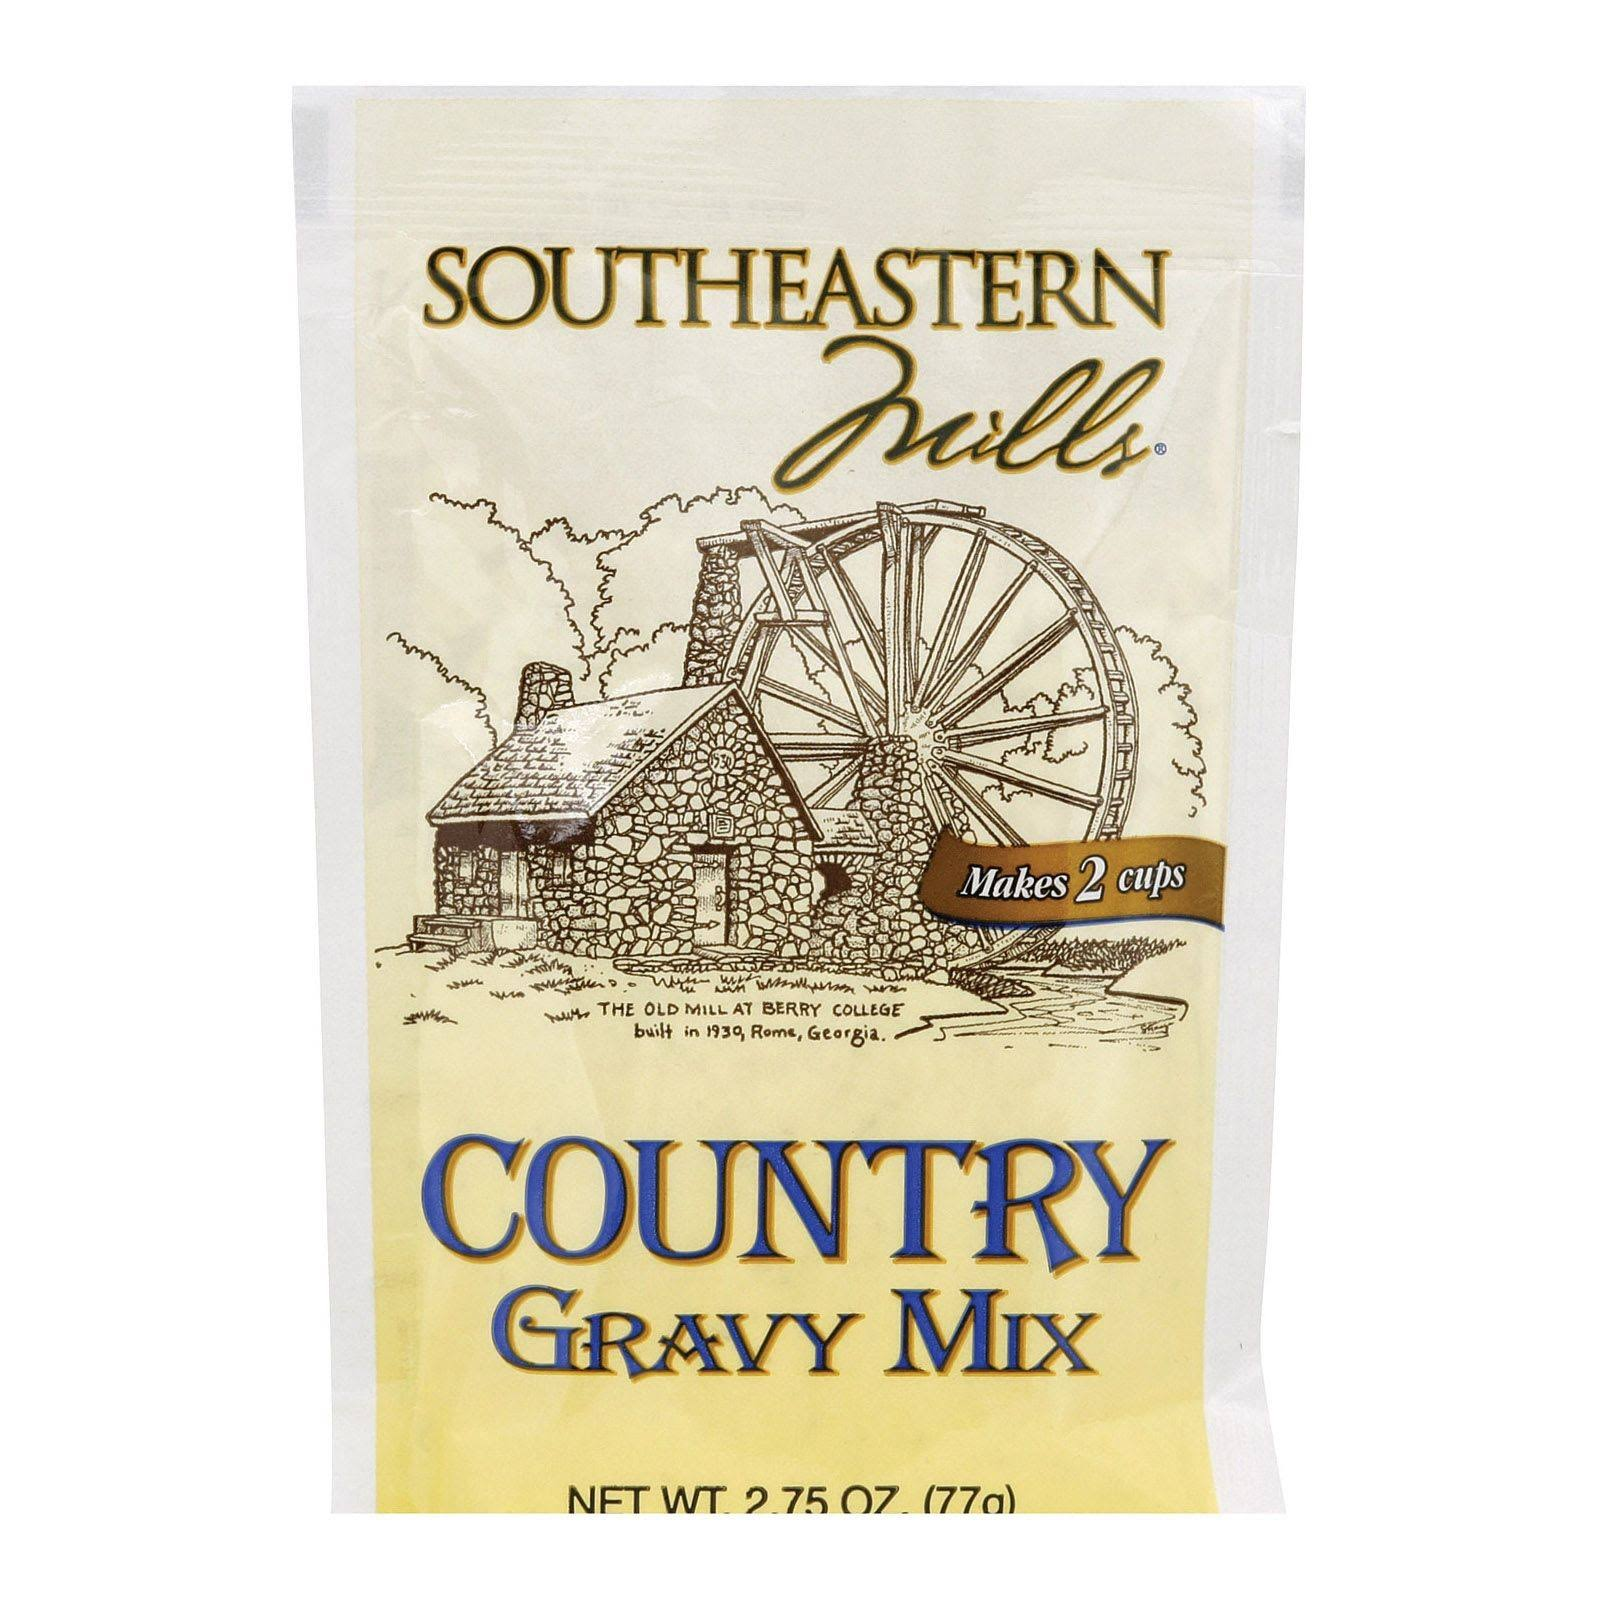 Southeastern Mills Country Gravy Mix - 77g